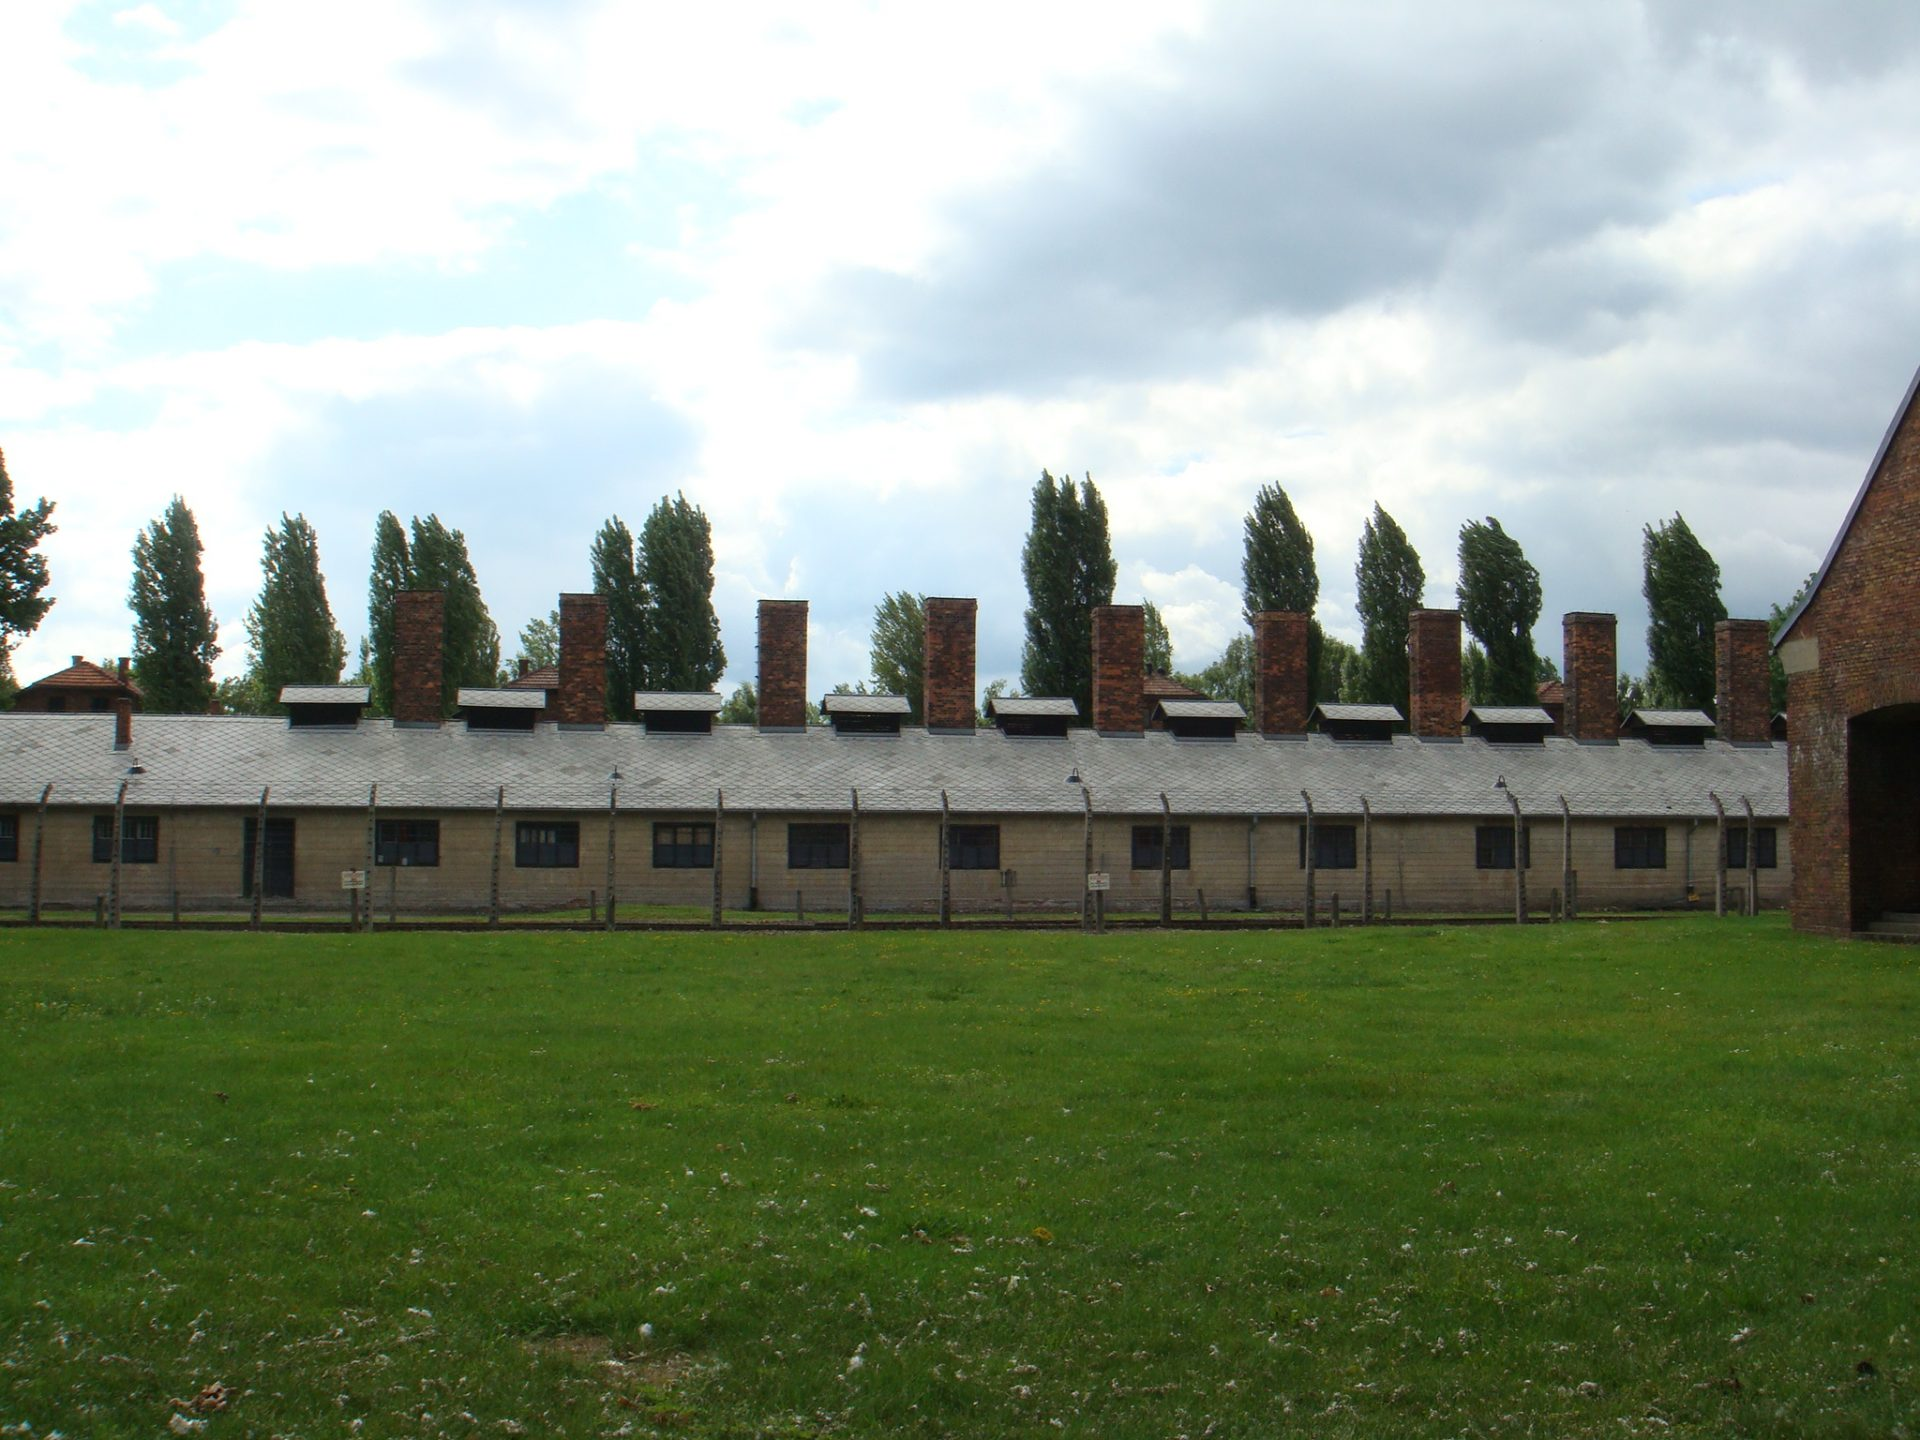 The first sight of Auschwitz, as you approach from the town of Oswiecim